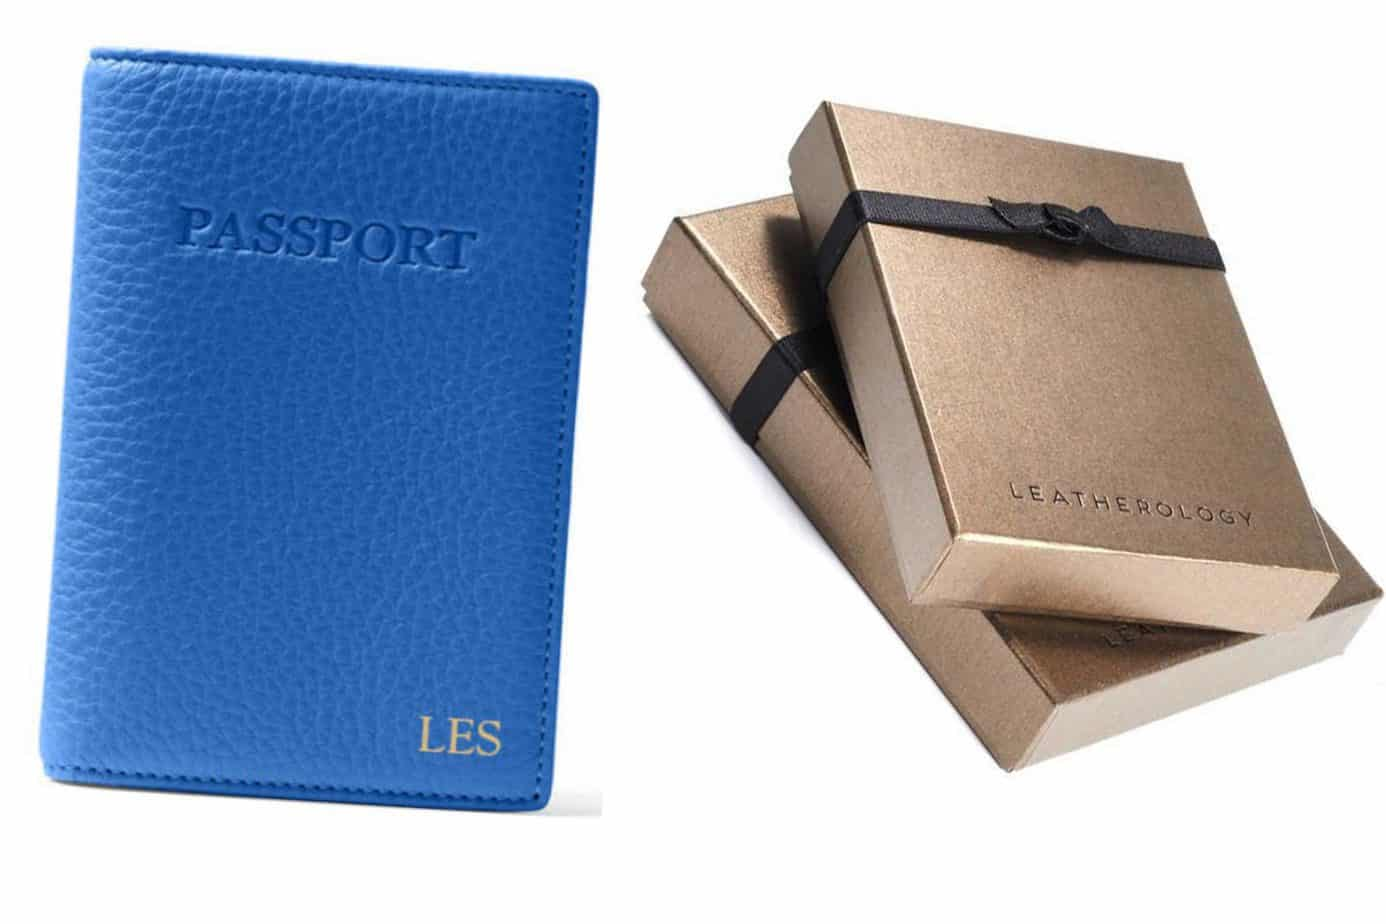 leatherology passport cover